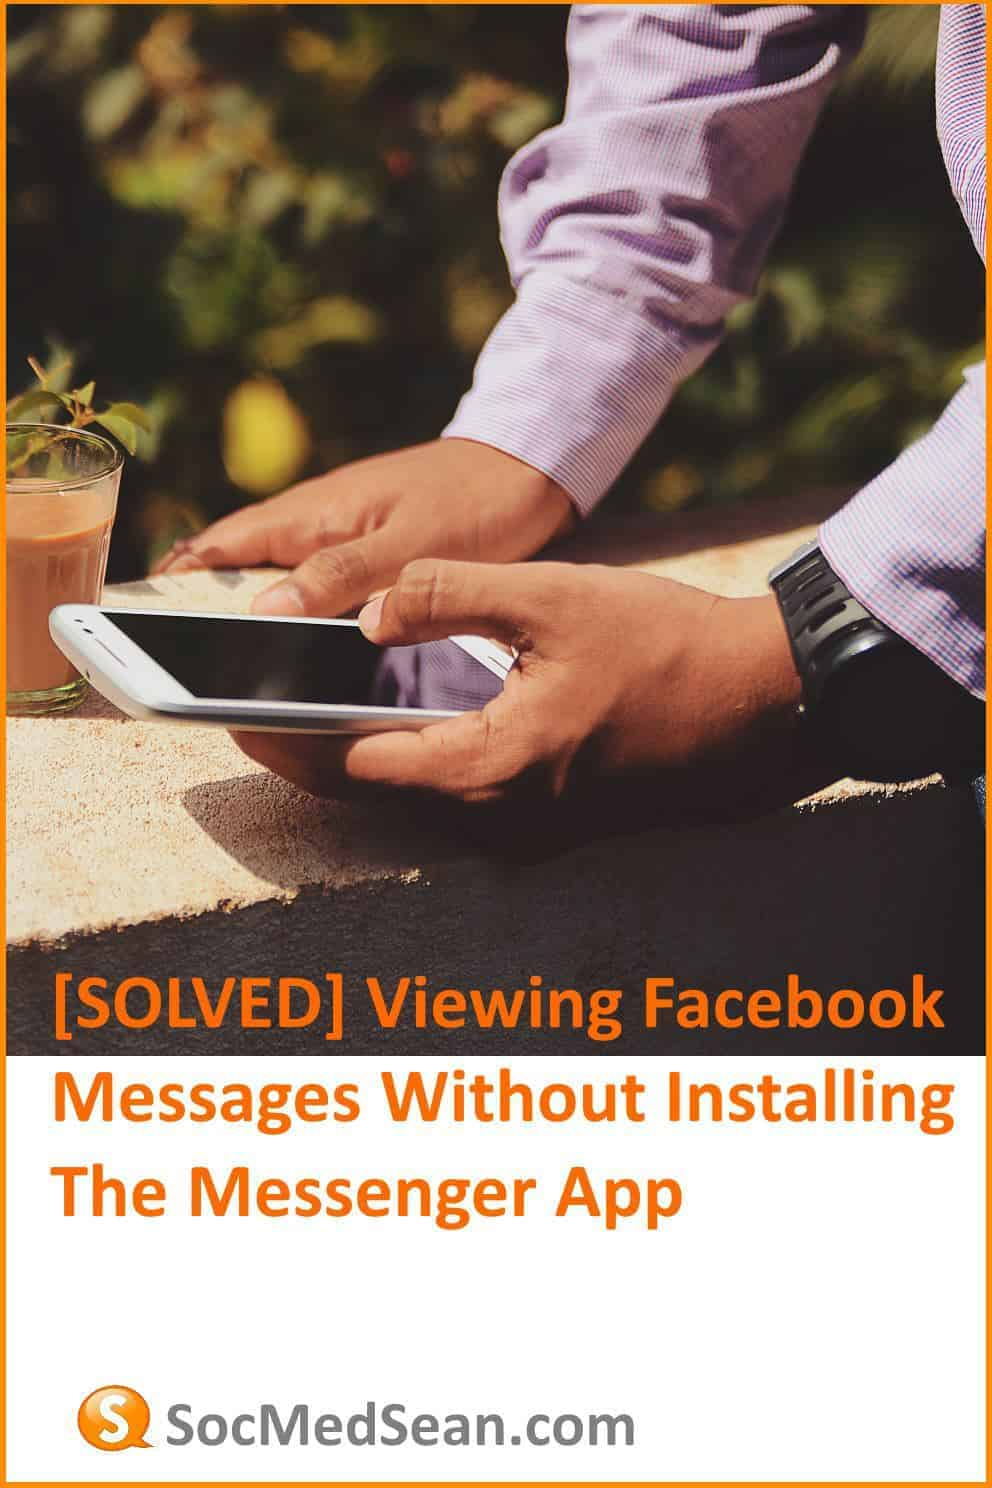 SOLVED] Viewing Facebook Messages Without Installing The Messenger